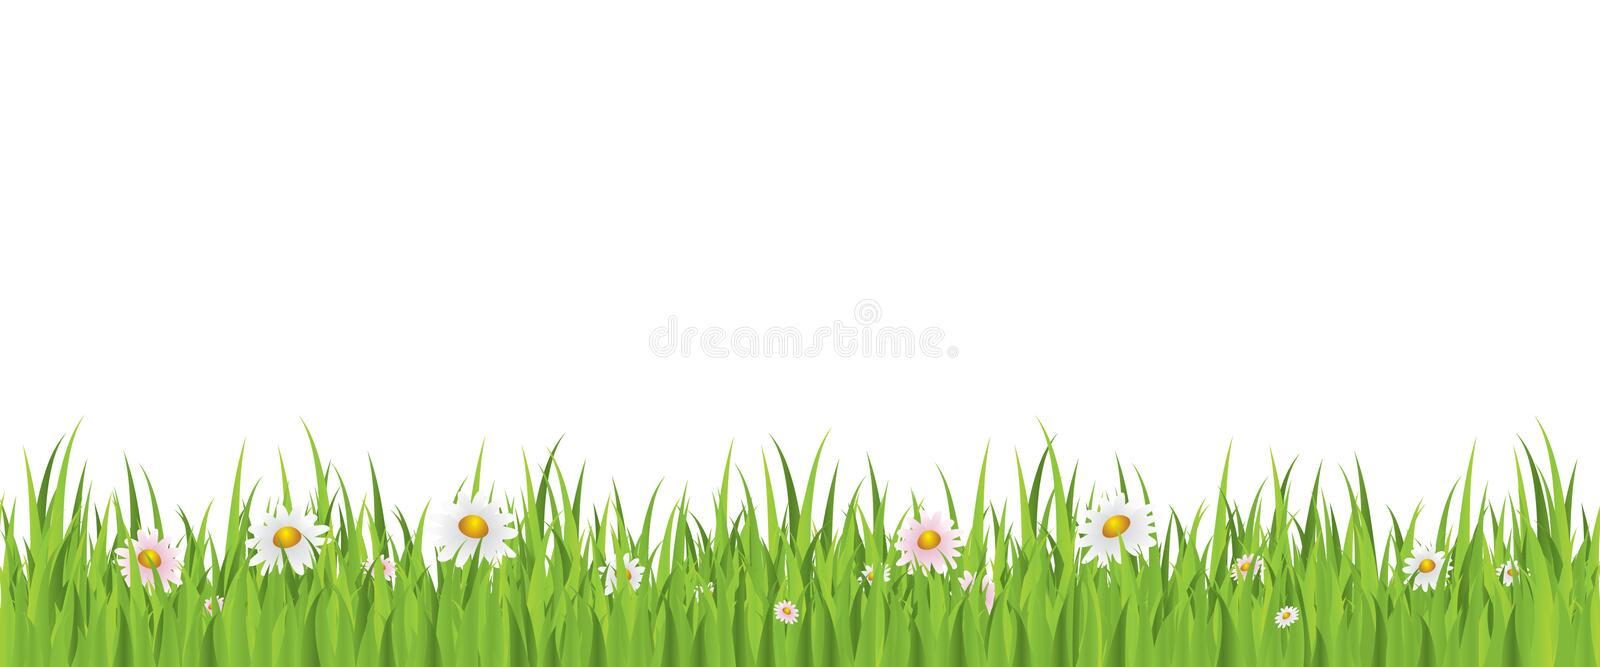 Spring Flower And Grass Seamless Background Stock Vector